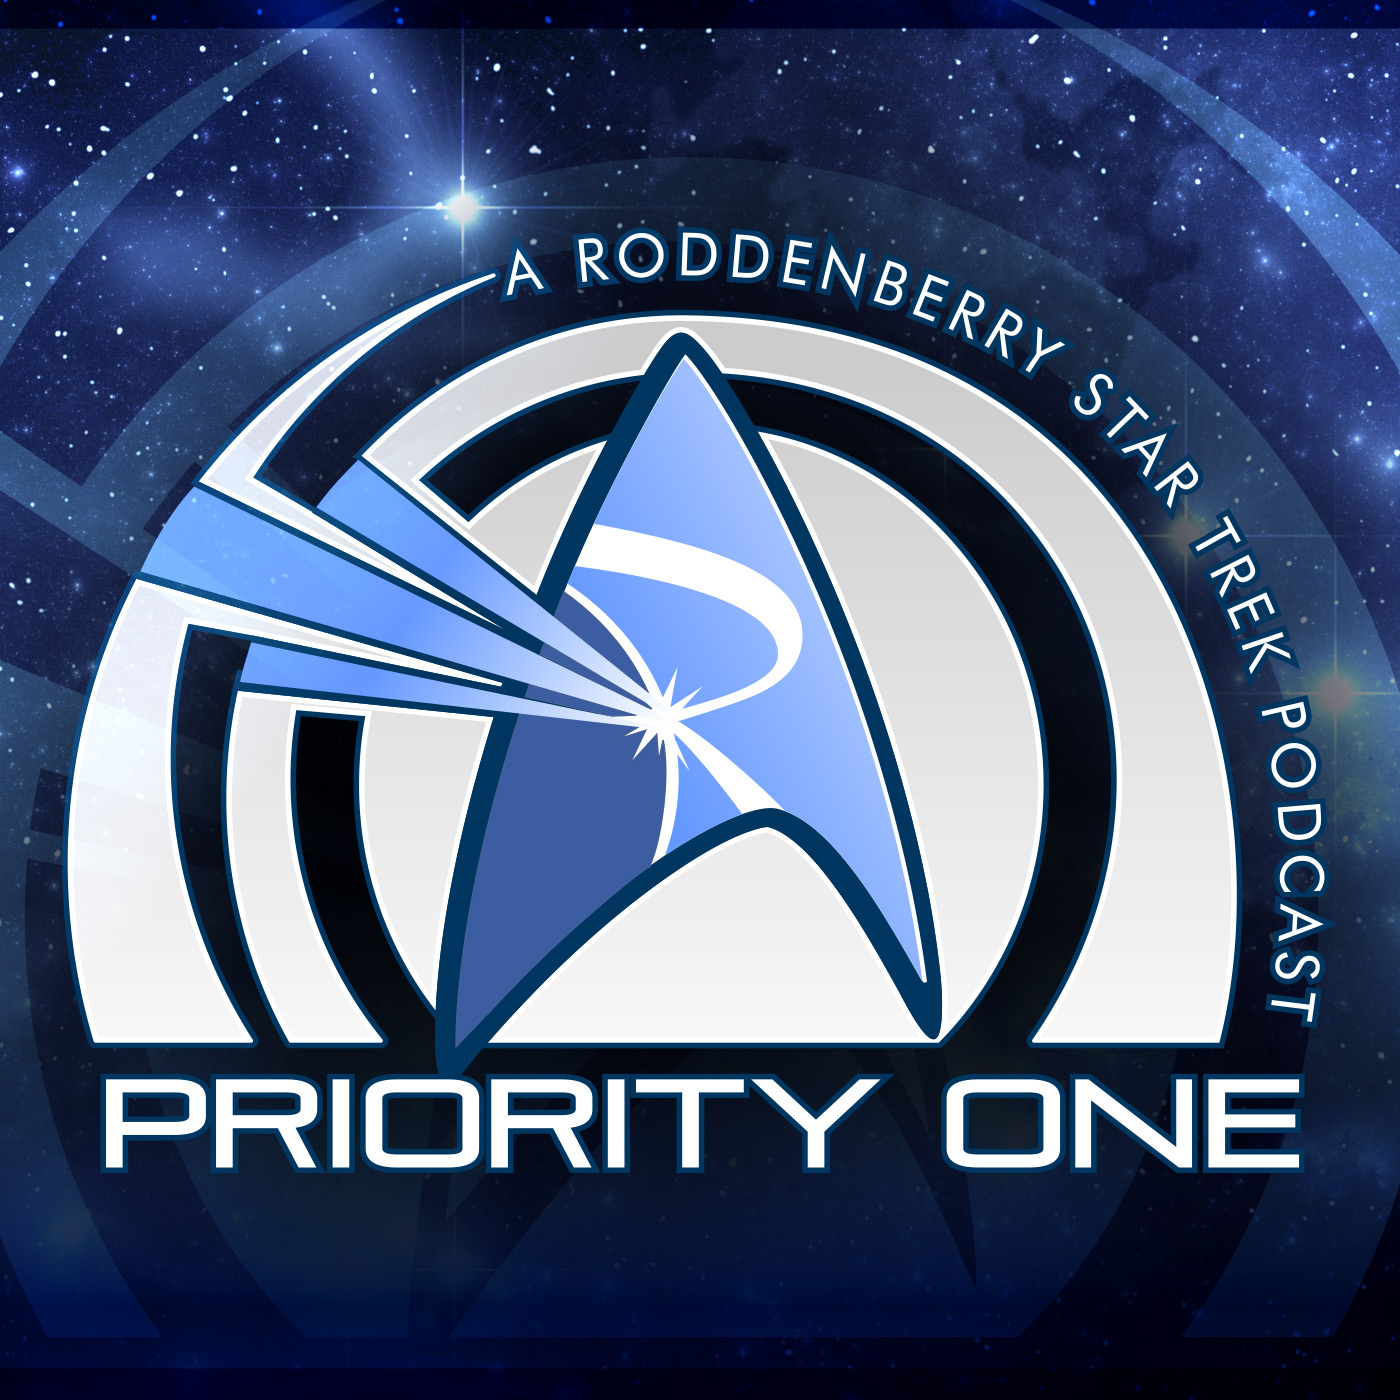 Artwork for 377 - STLV part 2 with Mary Wiseman, Mike Okuda, and Andrew Robinson | Priority One: A Roddenberry Star Trek Podcast